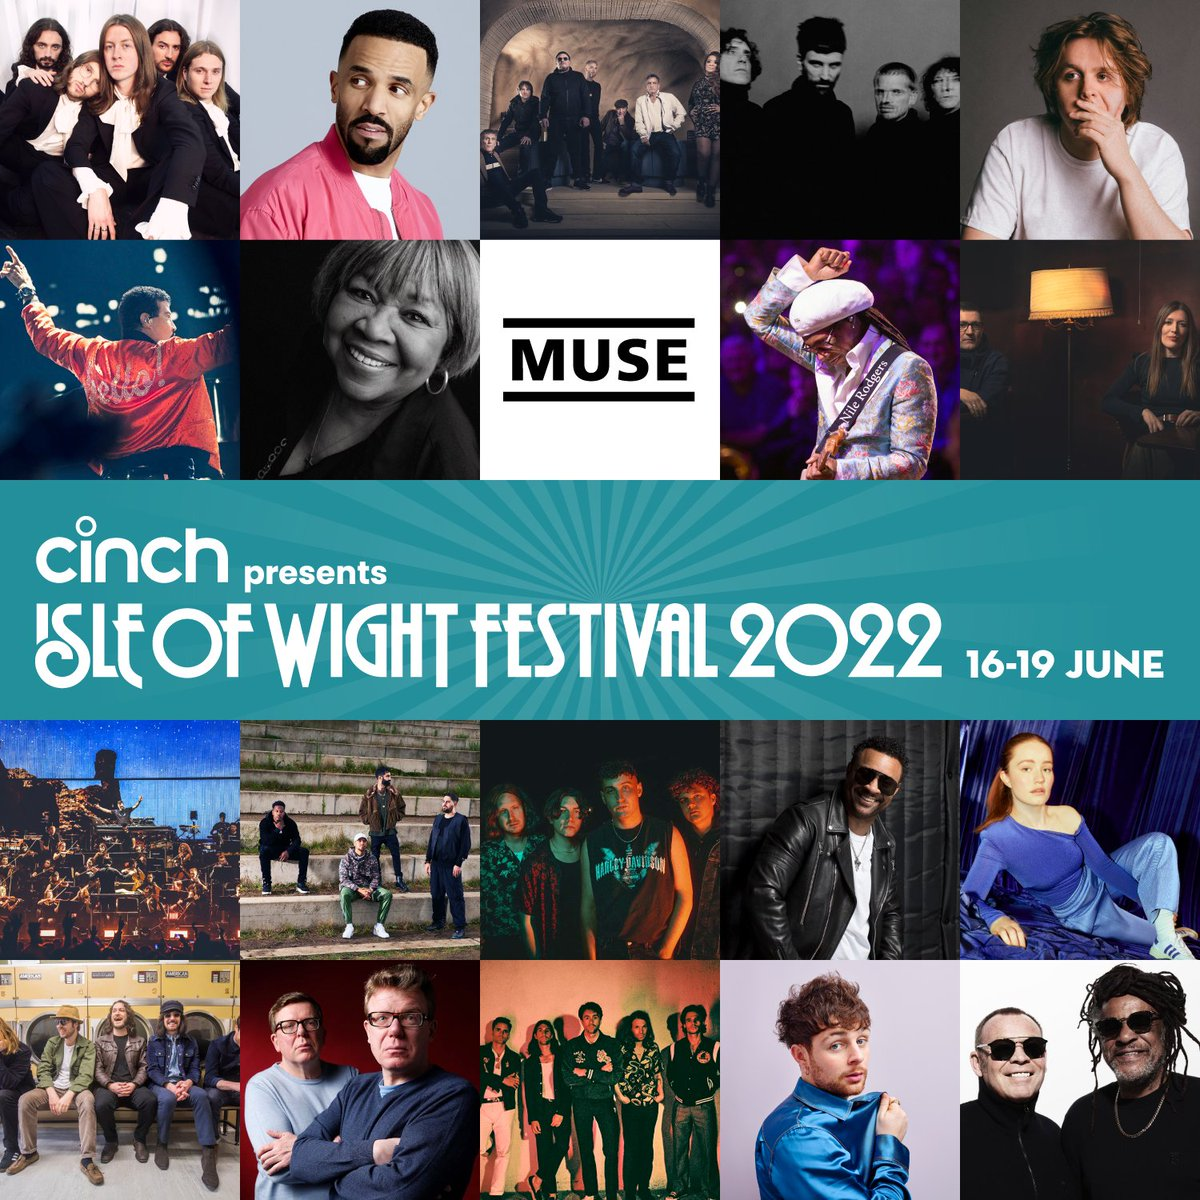 Check out our brand new #IOW2022 Spotify playlist featuring artists from our incredible line up including @LewisCapaldi, @muse, @KasabianHQ, @LionelRichie, @petetong, @thisissigrid, @Rudimental + many many more! Listen here: open.spotify.com/playlist/07iFb… #cinchxIOW